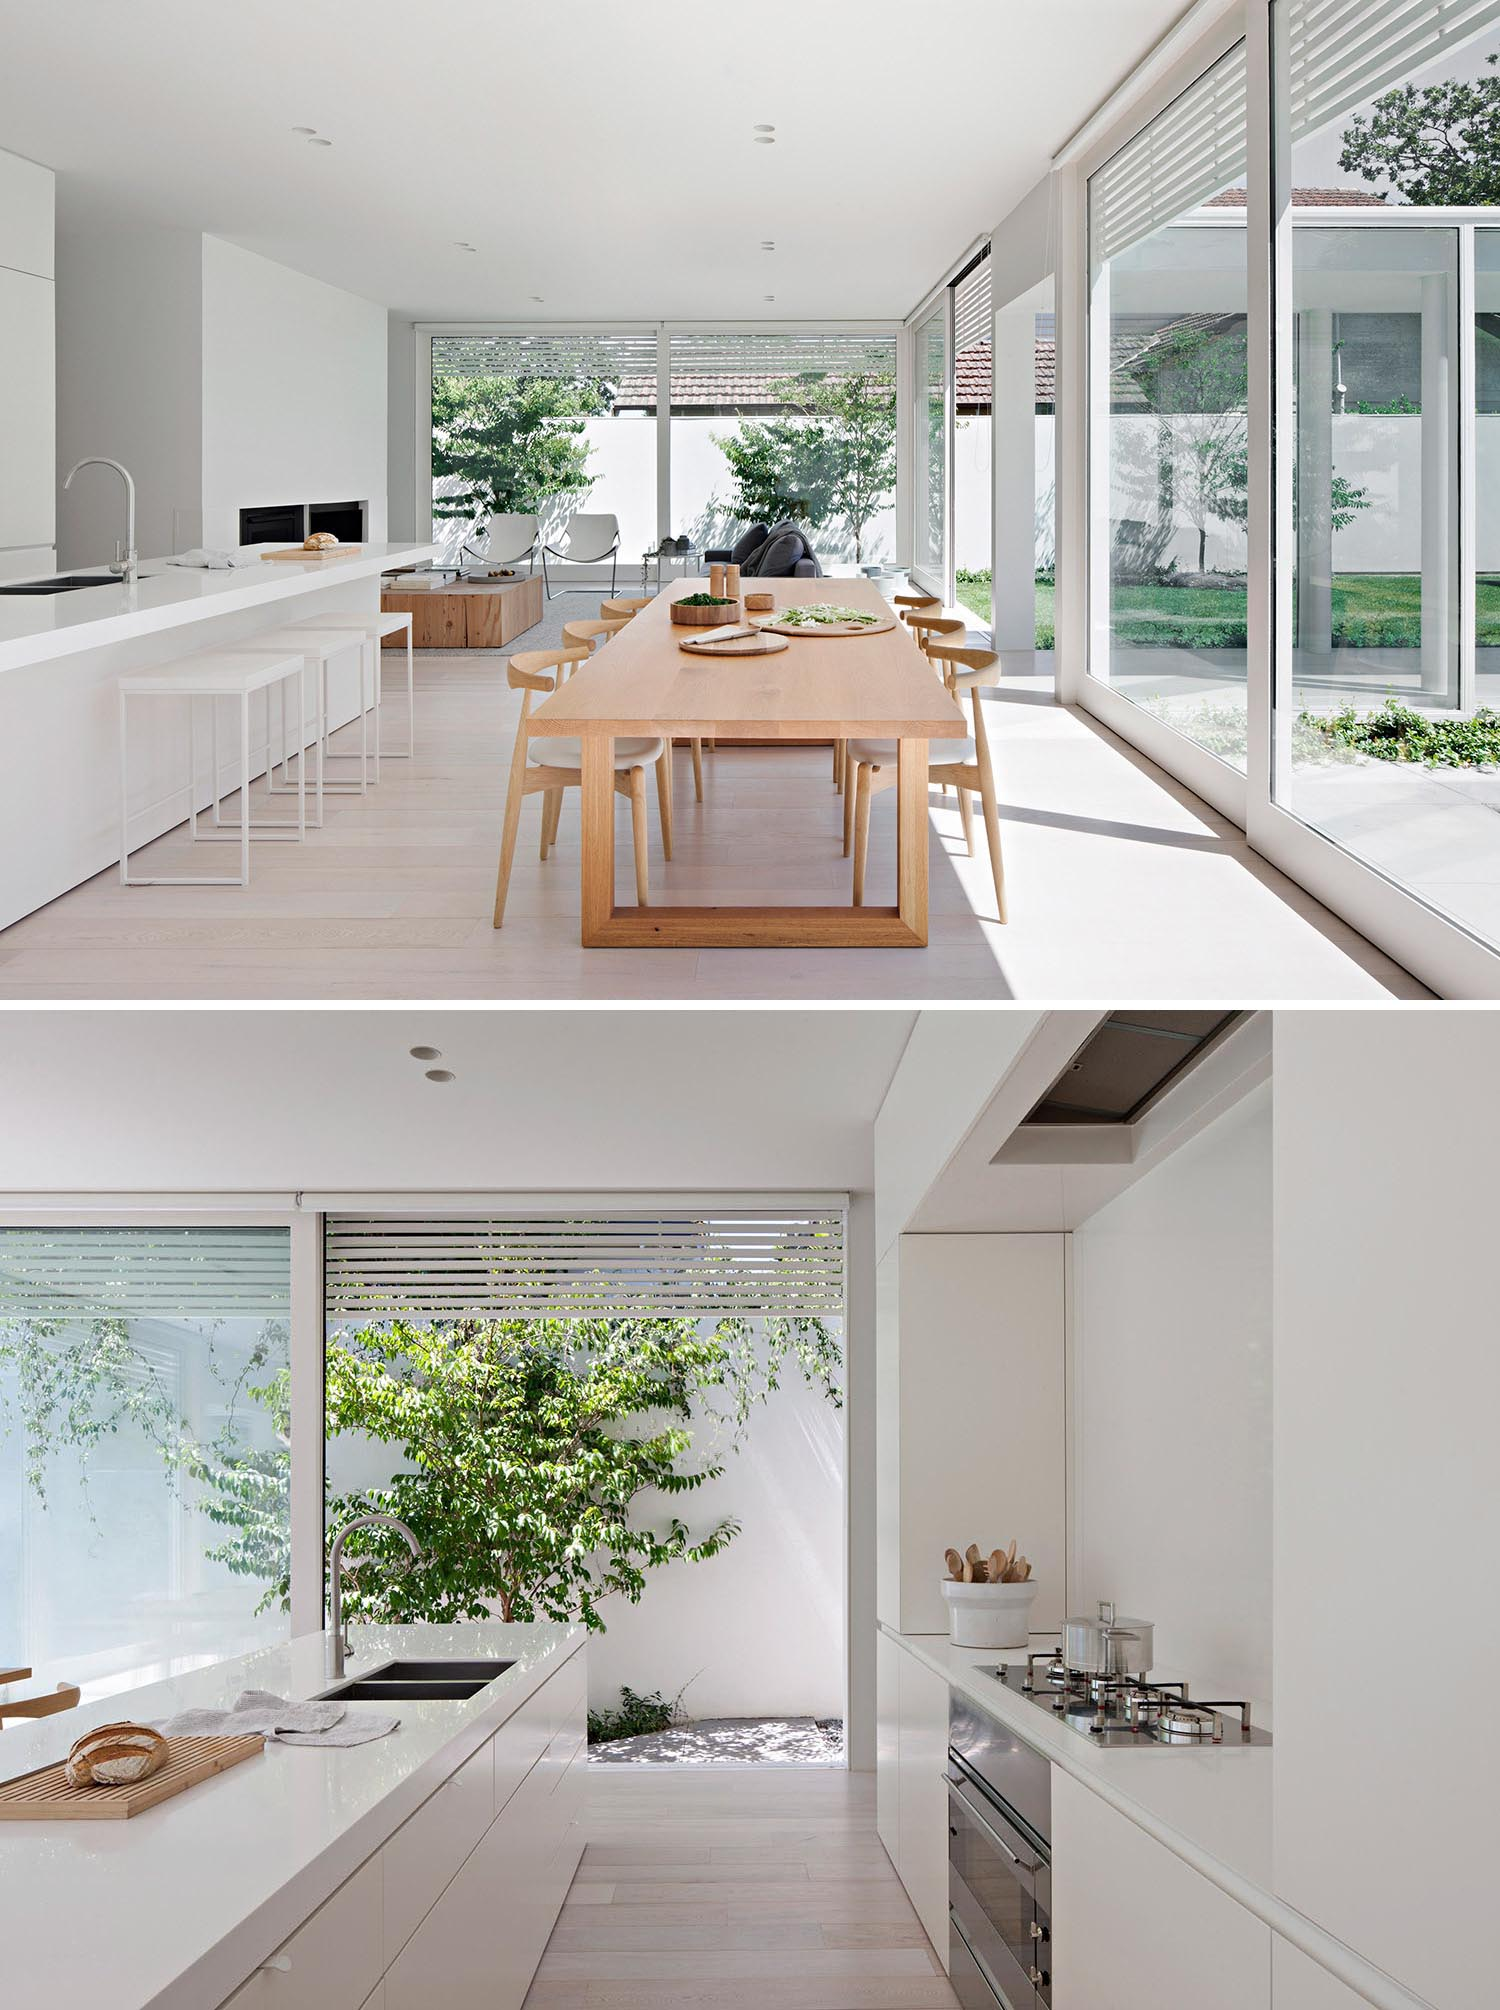 A modern open plan interior with a large wood dining table and minimalist white kitchen.